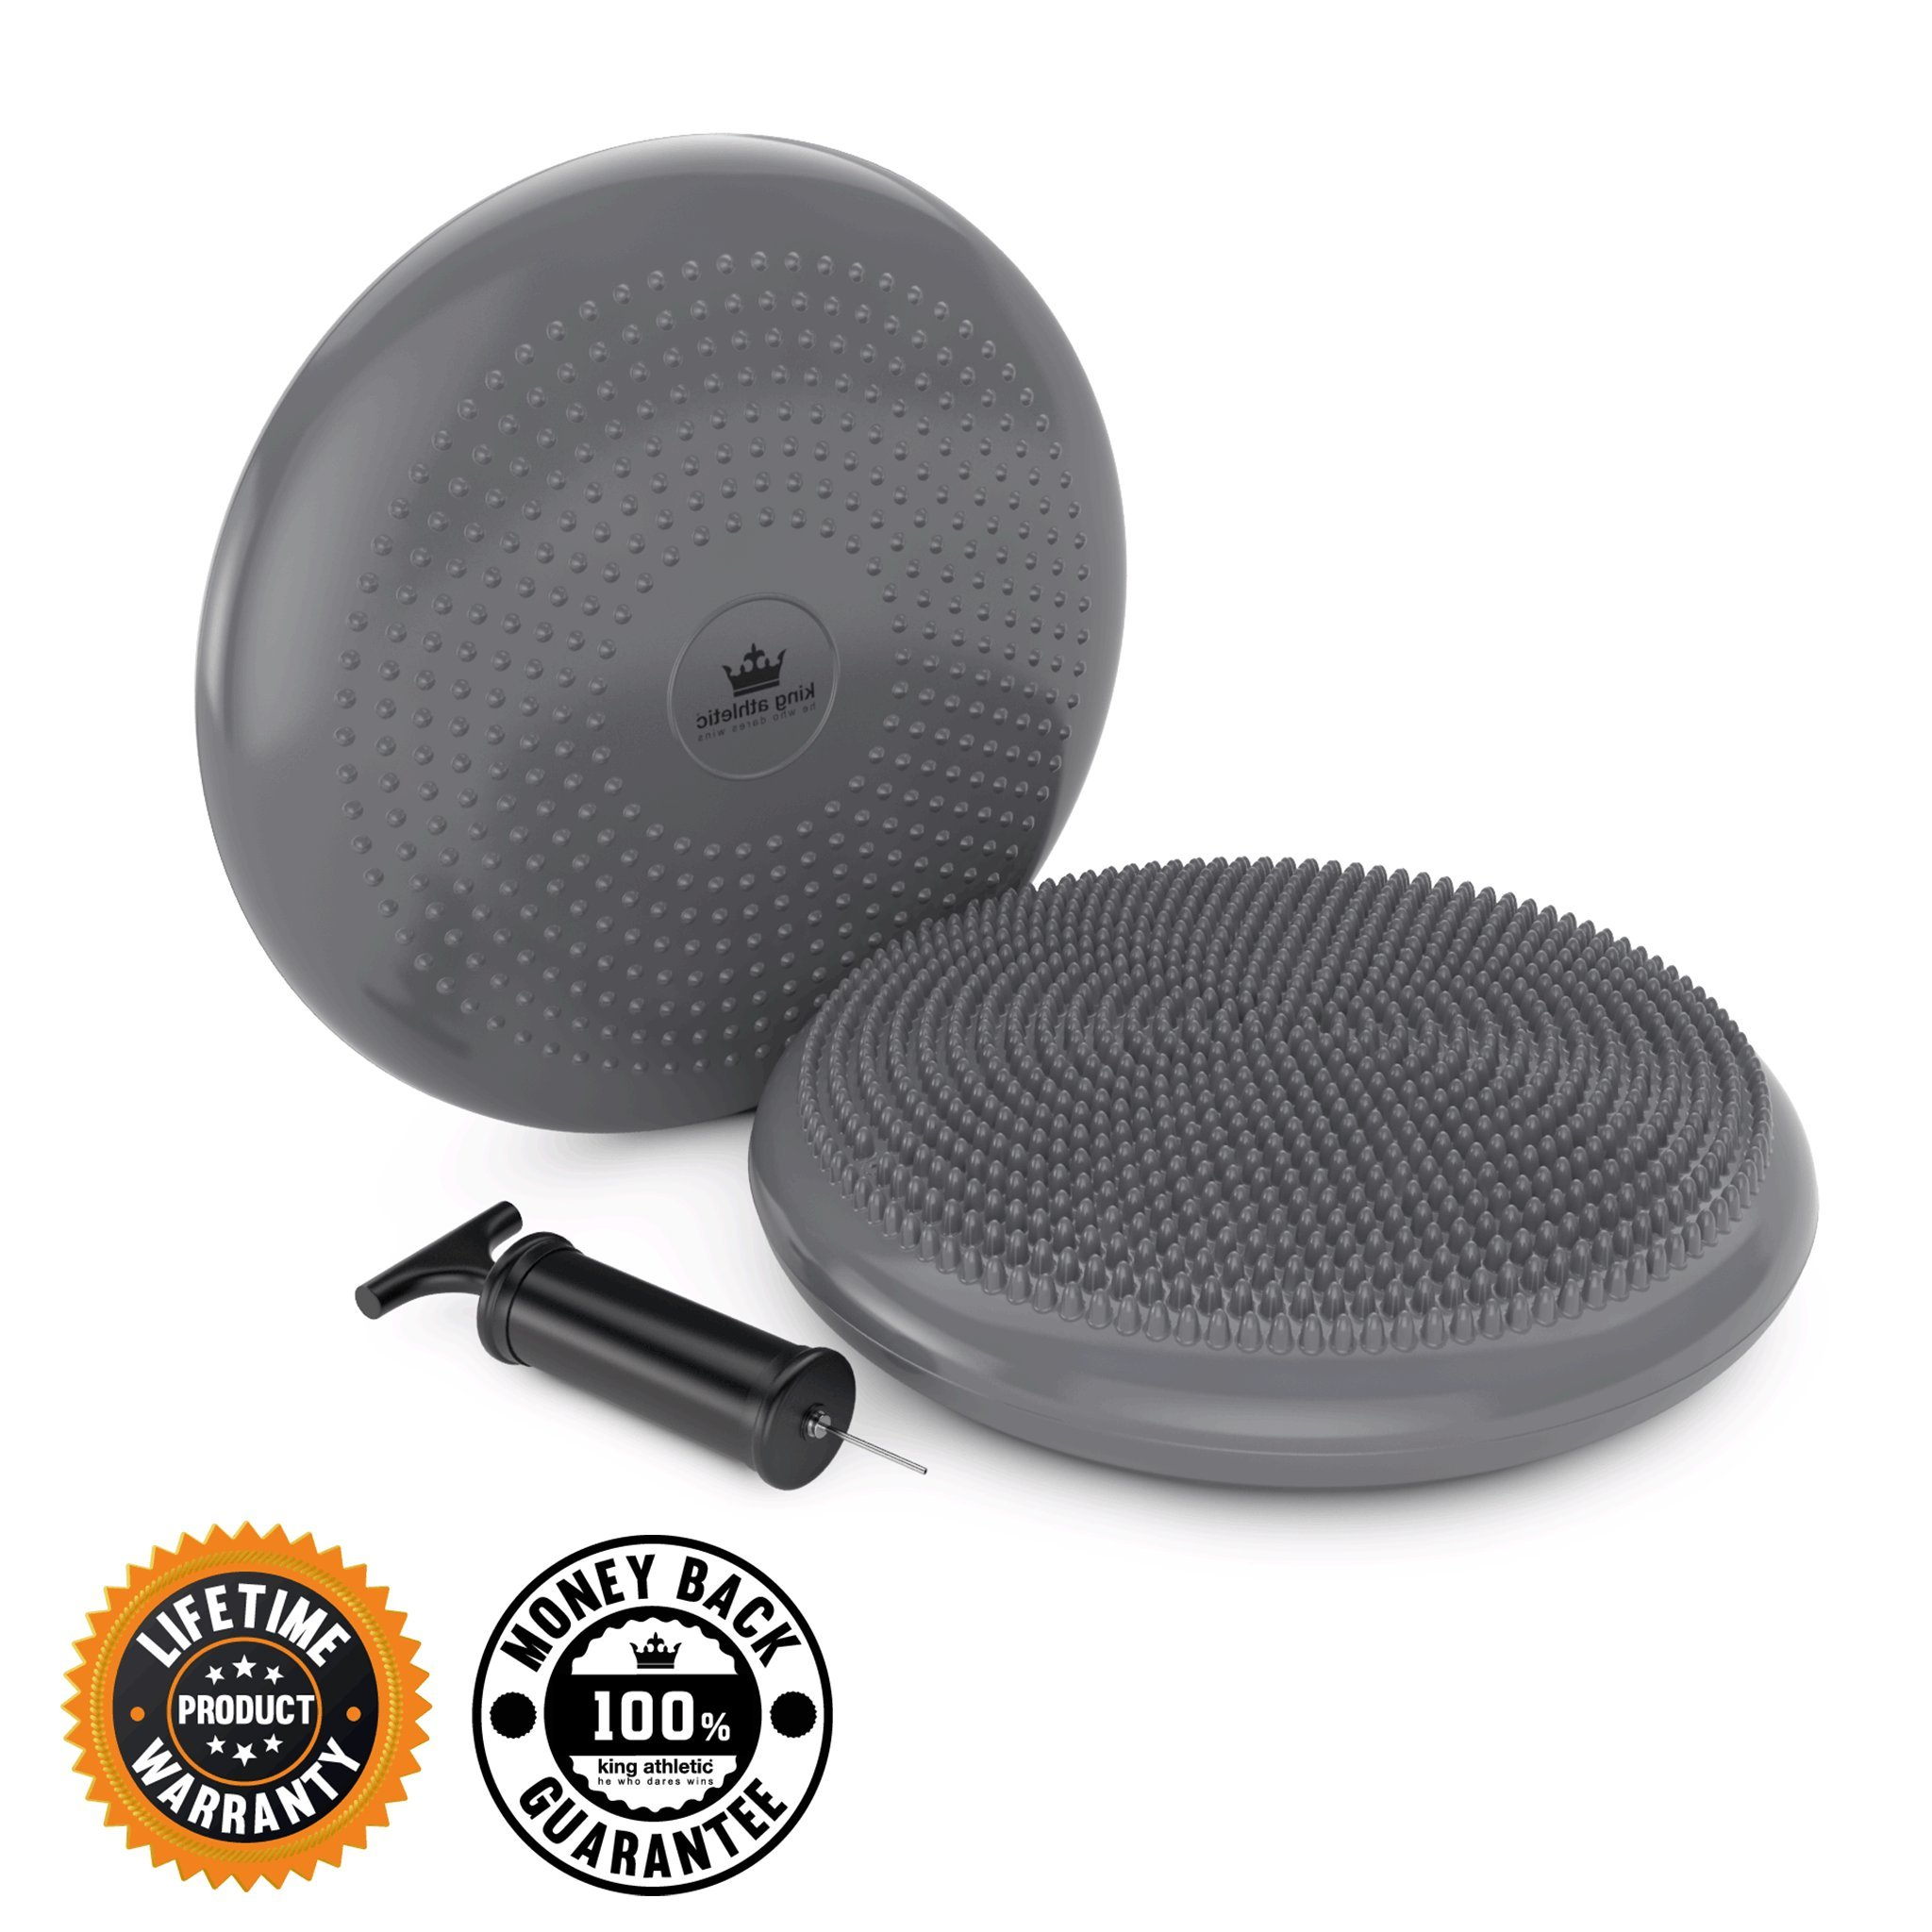 King Athletic Stability Disc :: Balance Air Seat Cushion :: Wobble/Wiggle Chair Sitting Disk for Core Instability Exercise Training :: Instructional eBook Included